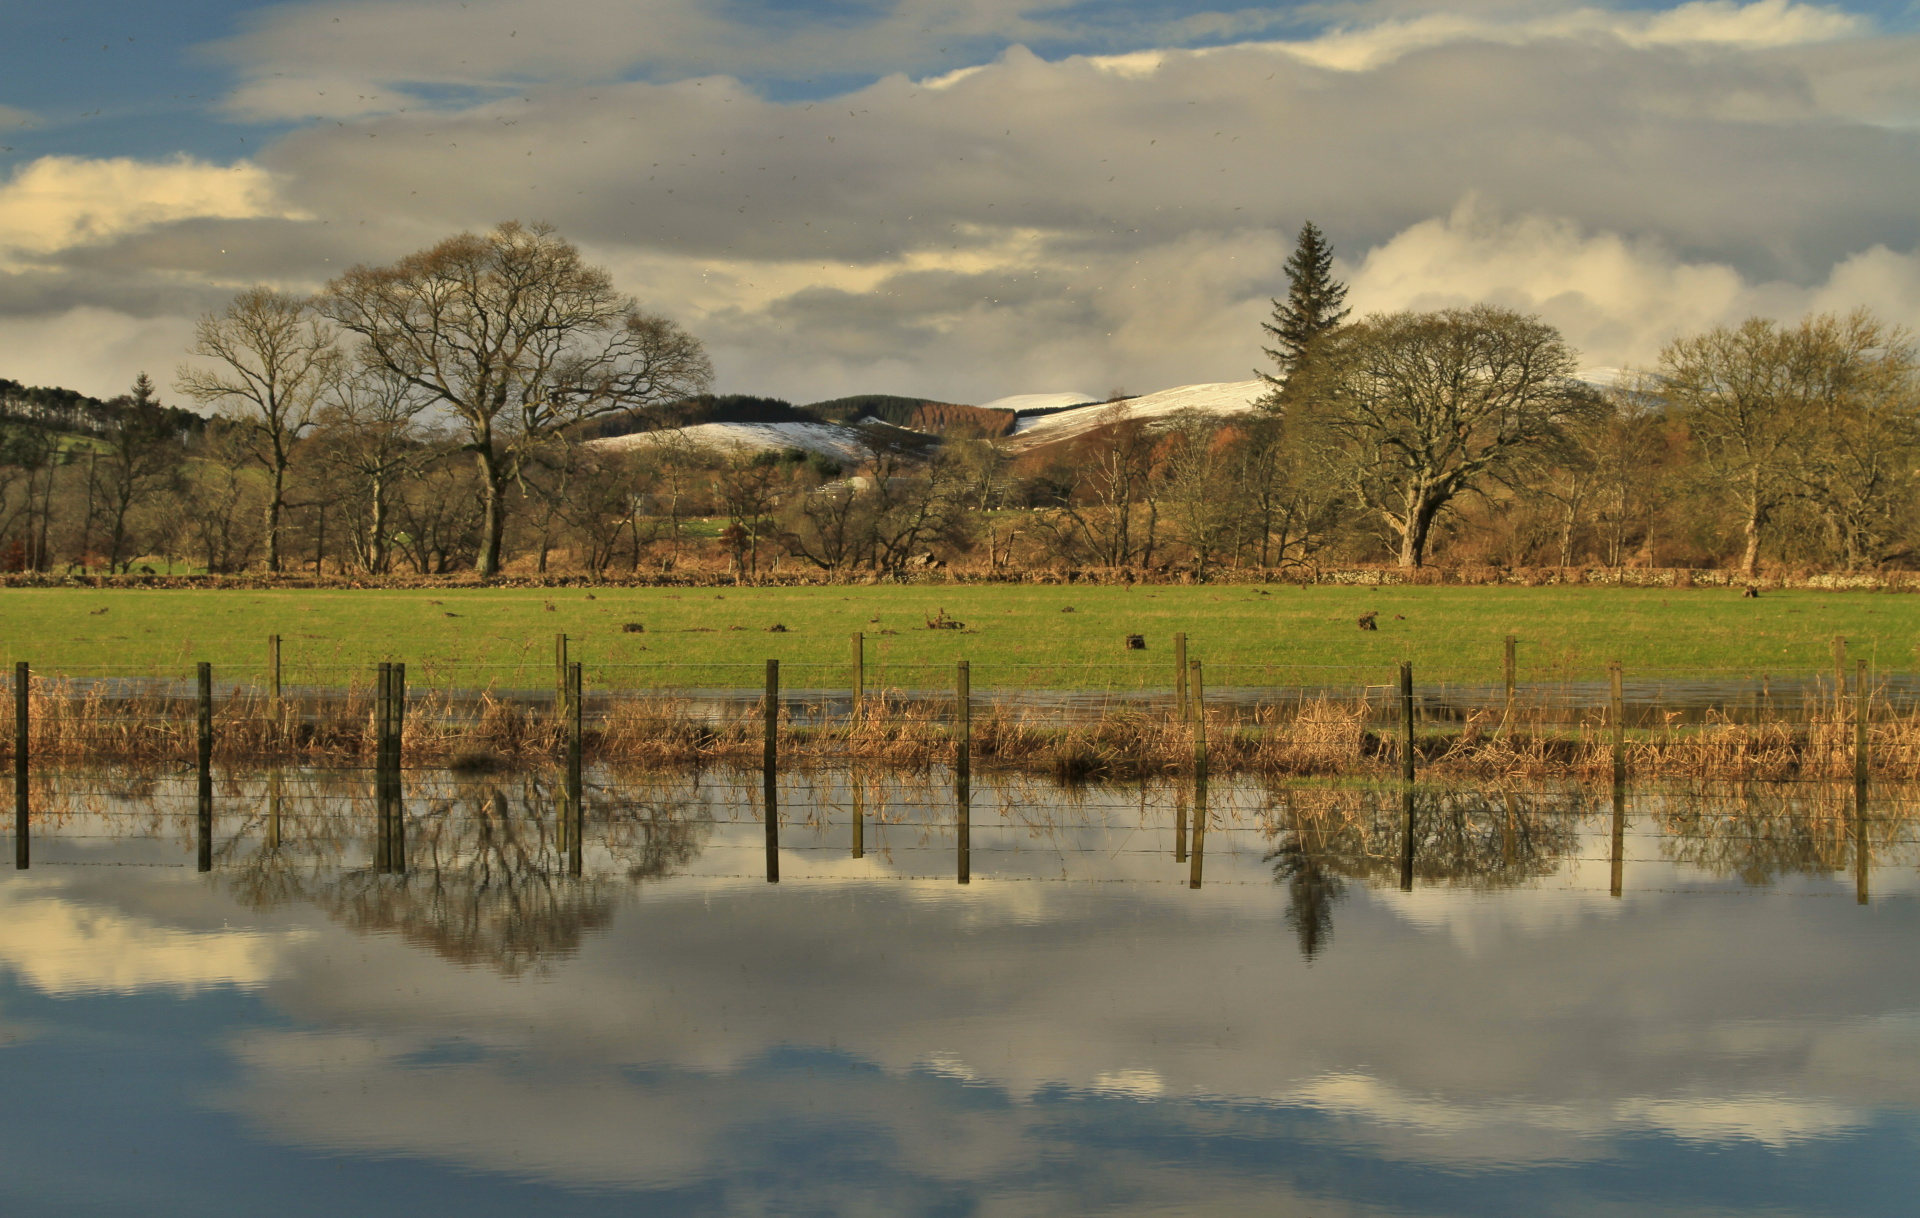 Flood, river Tweed near Peebles